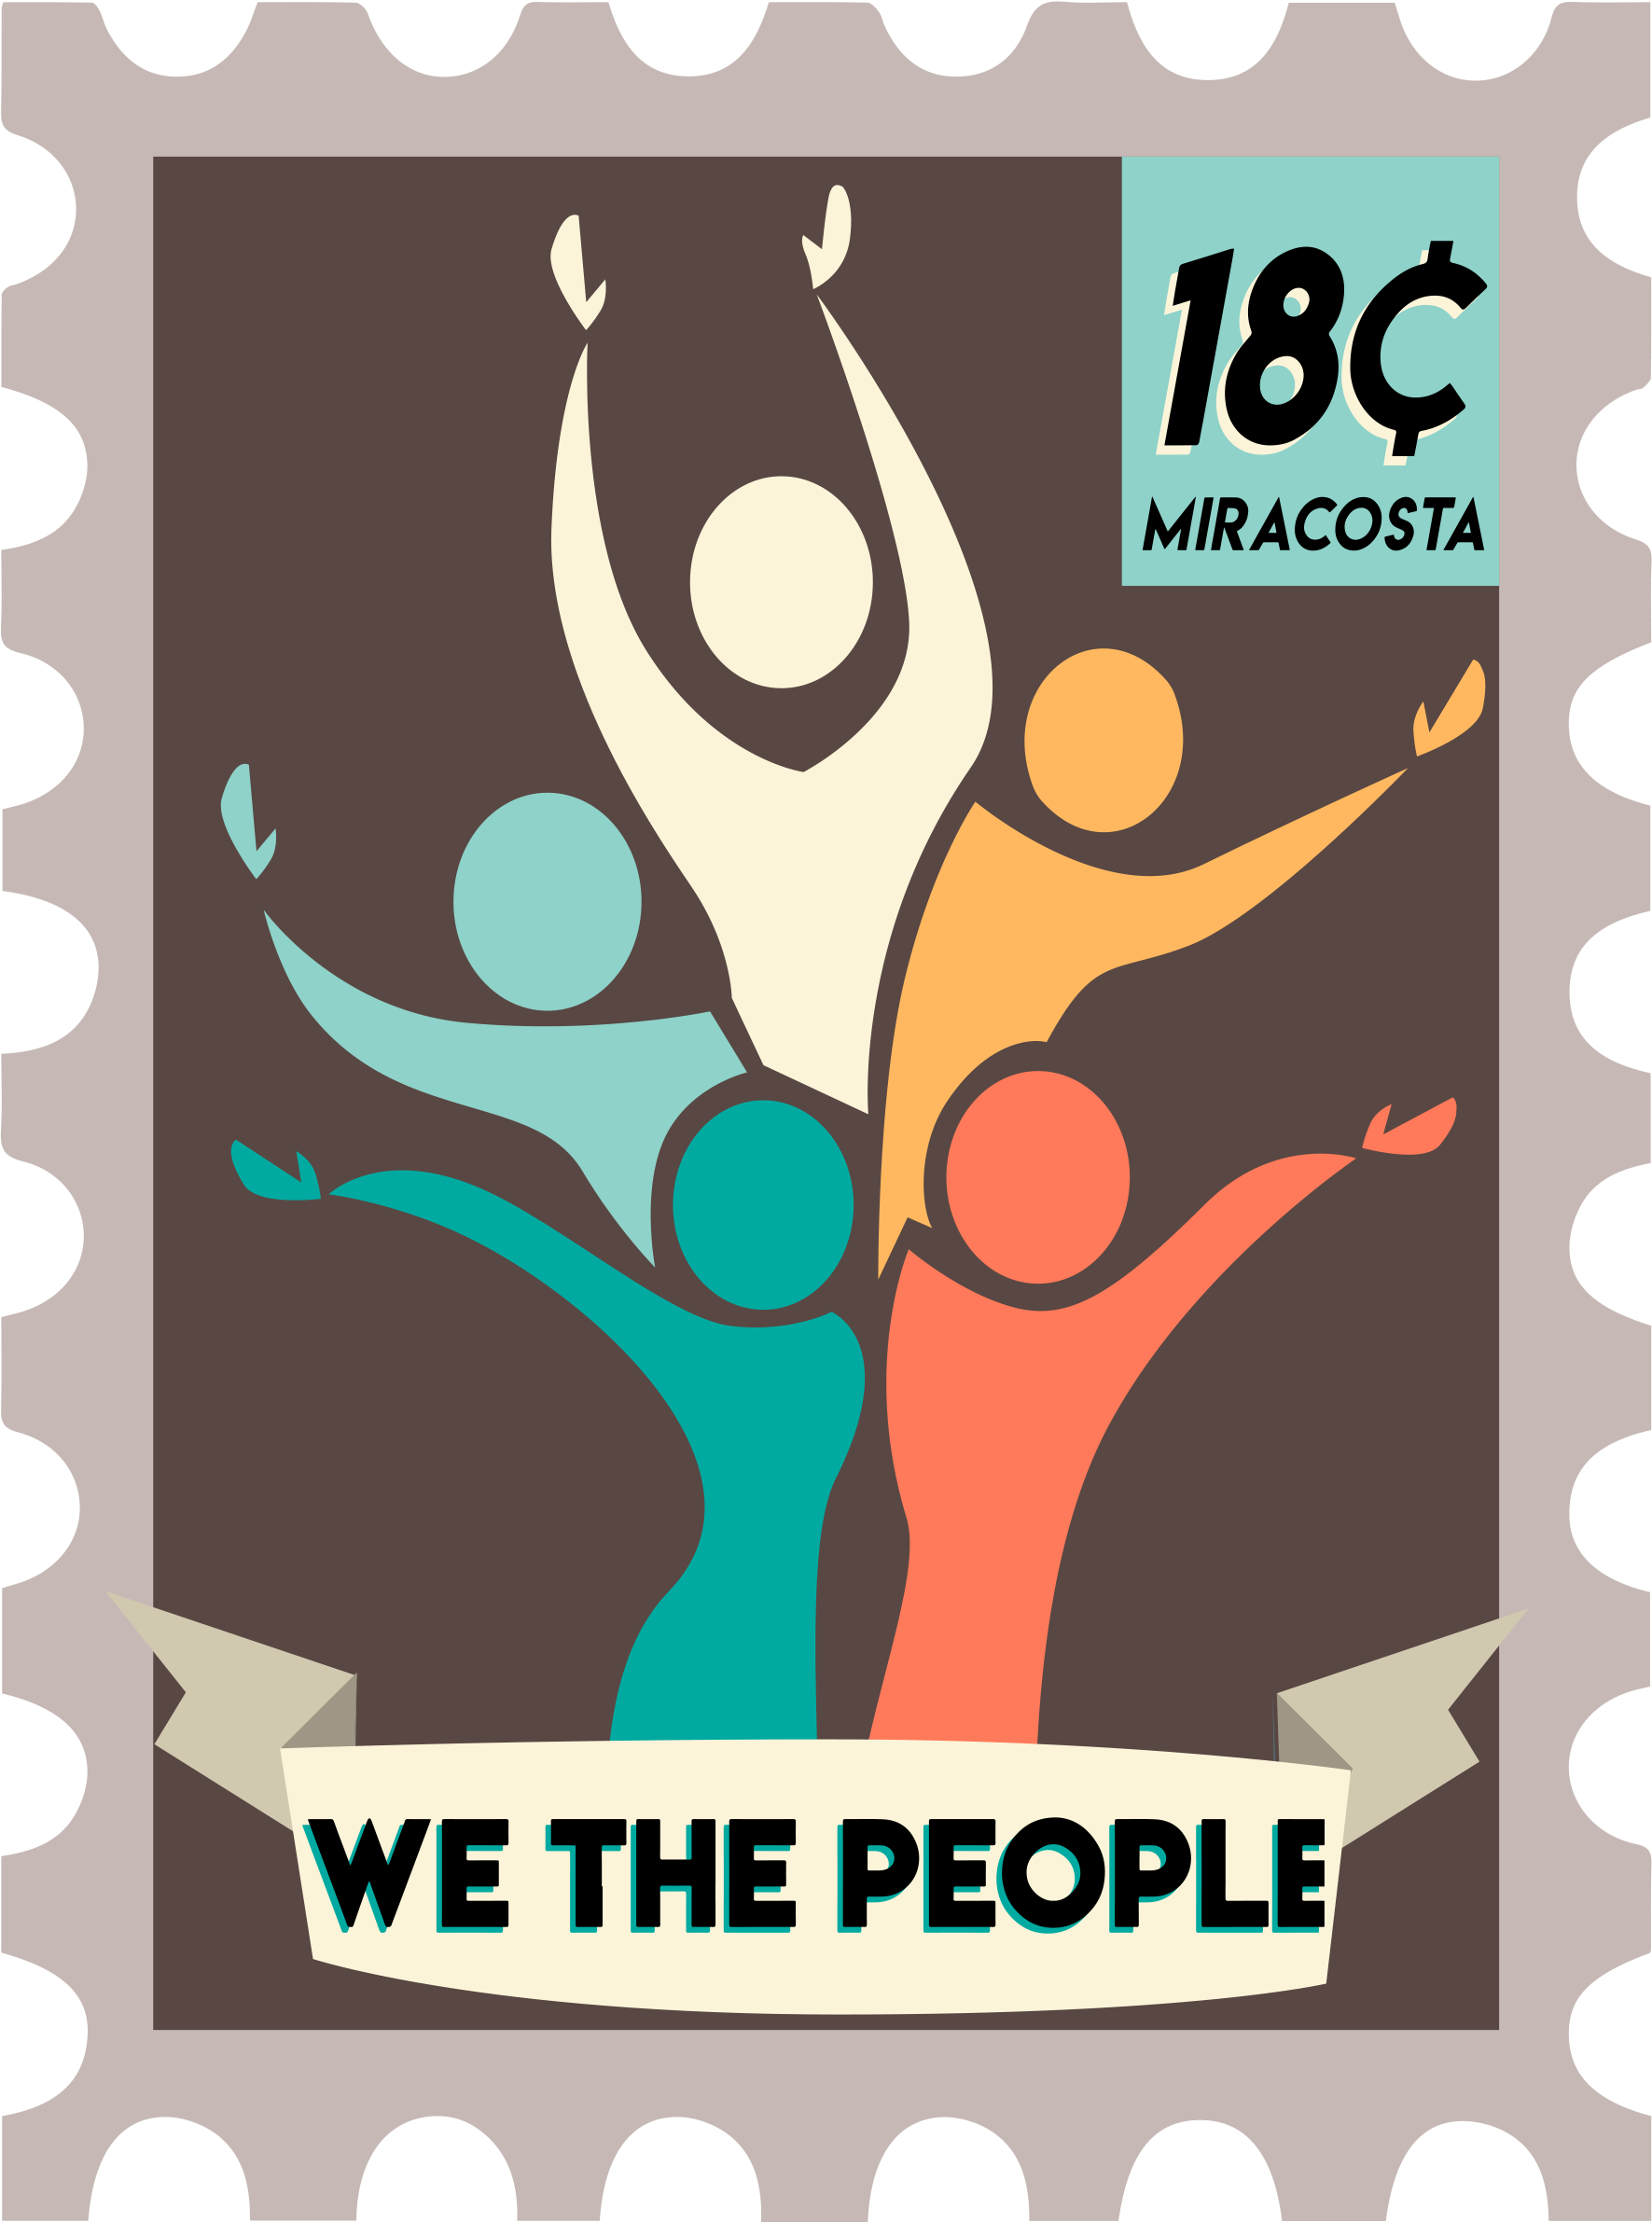 We the People Logo - Humans in different colors on grey stamp.